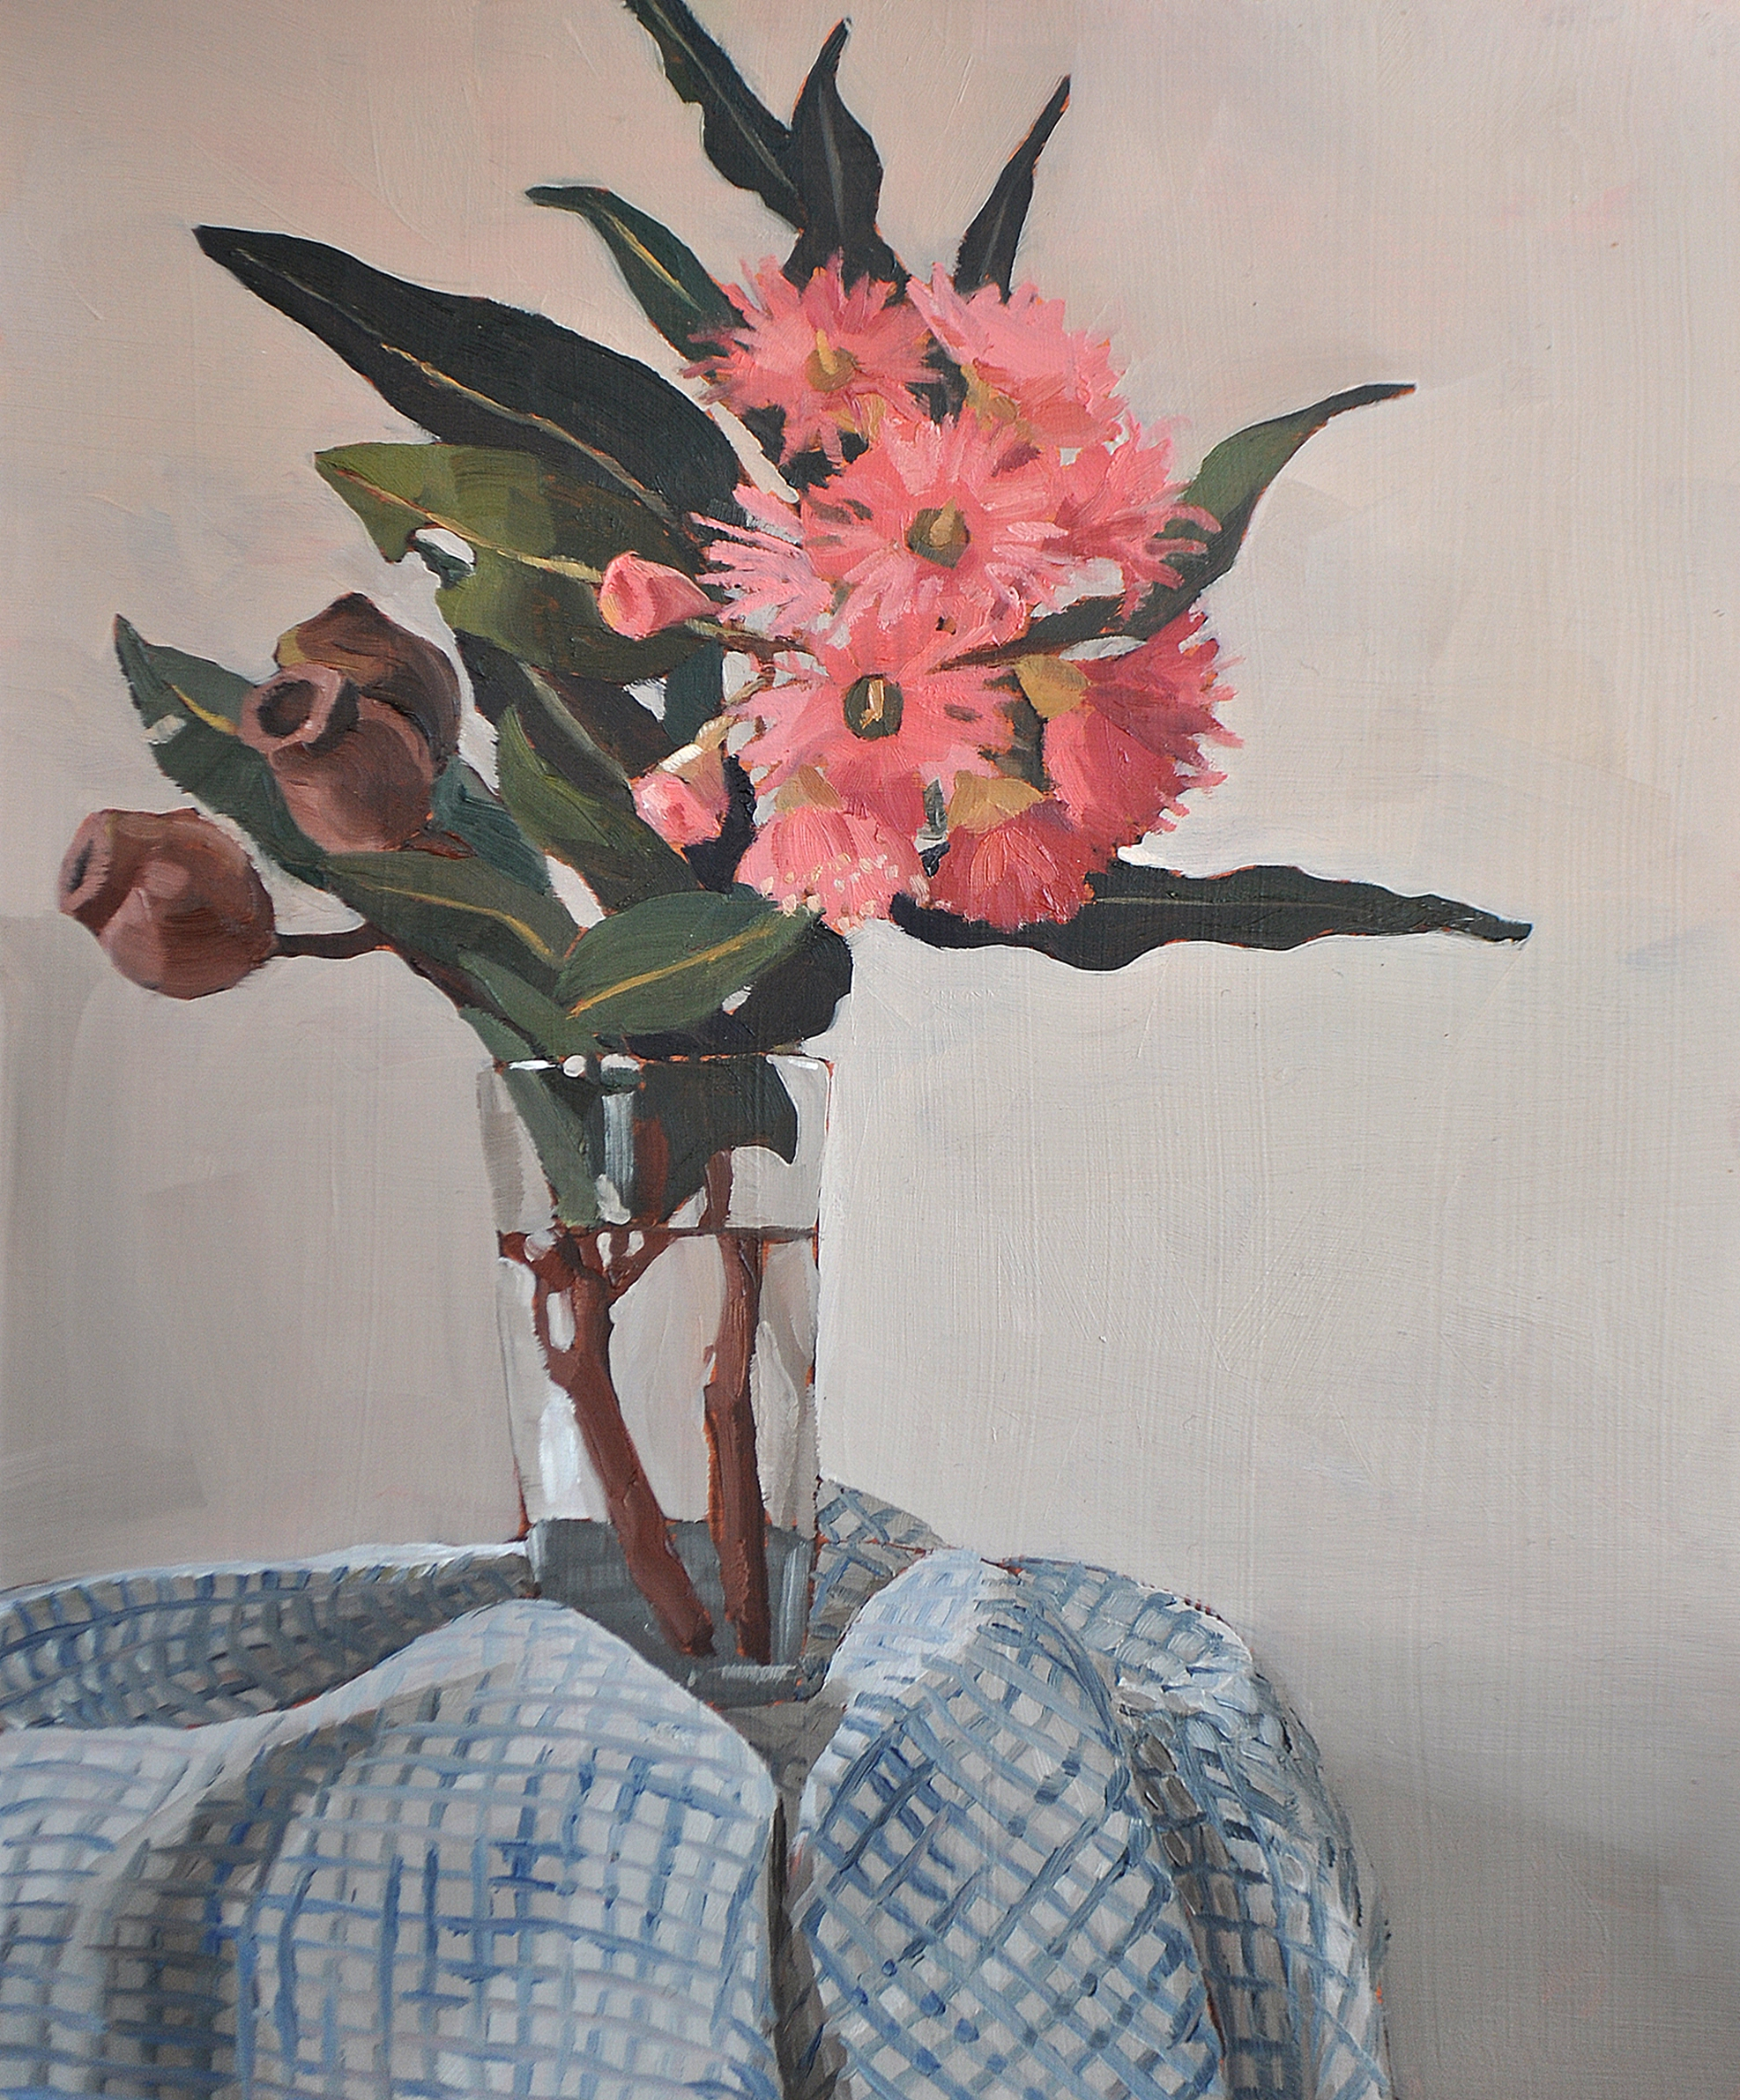 Ficifolia oil painting by Emma Fuss